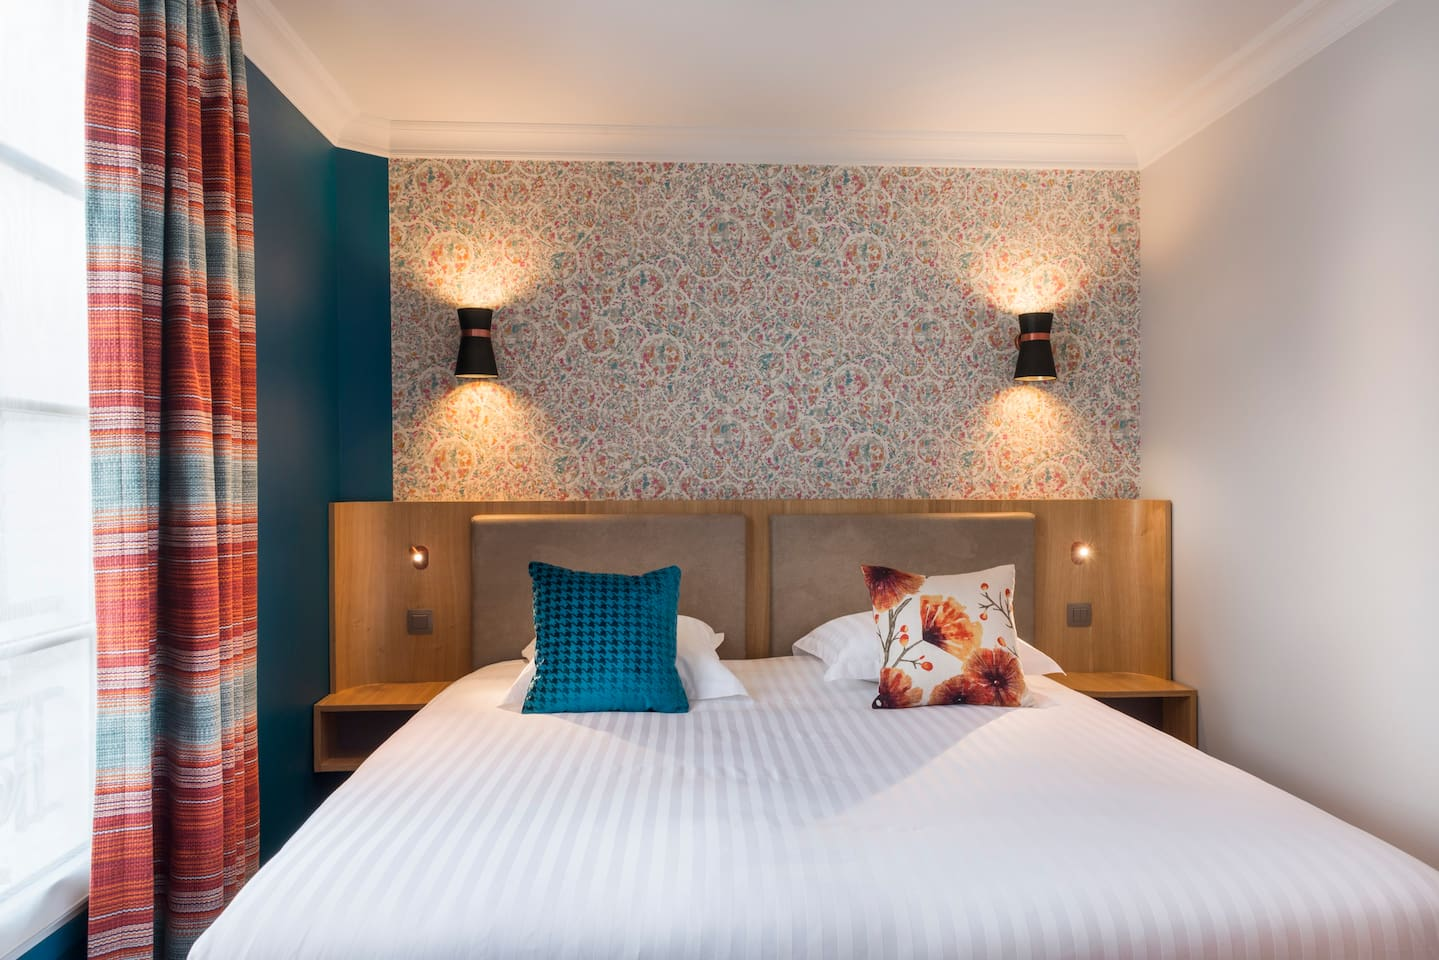 Stylish room for one person, perfect for solo traveller or work